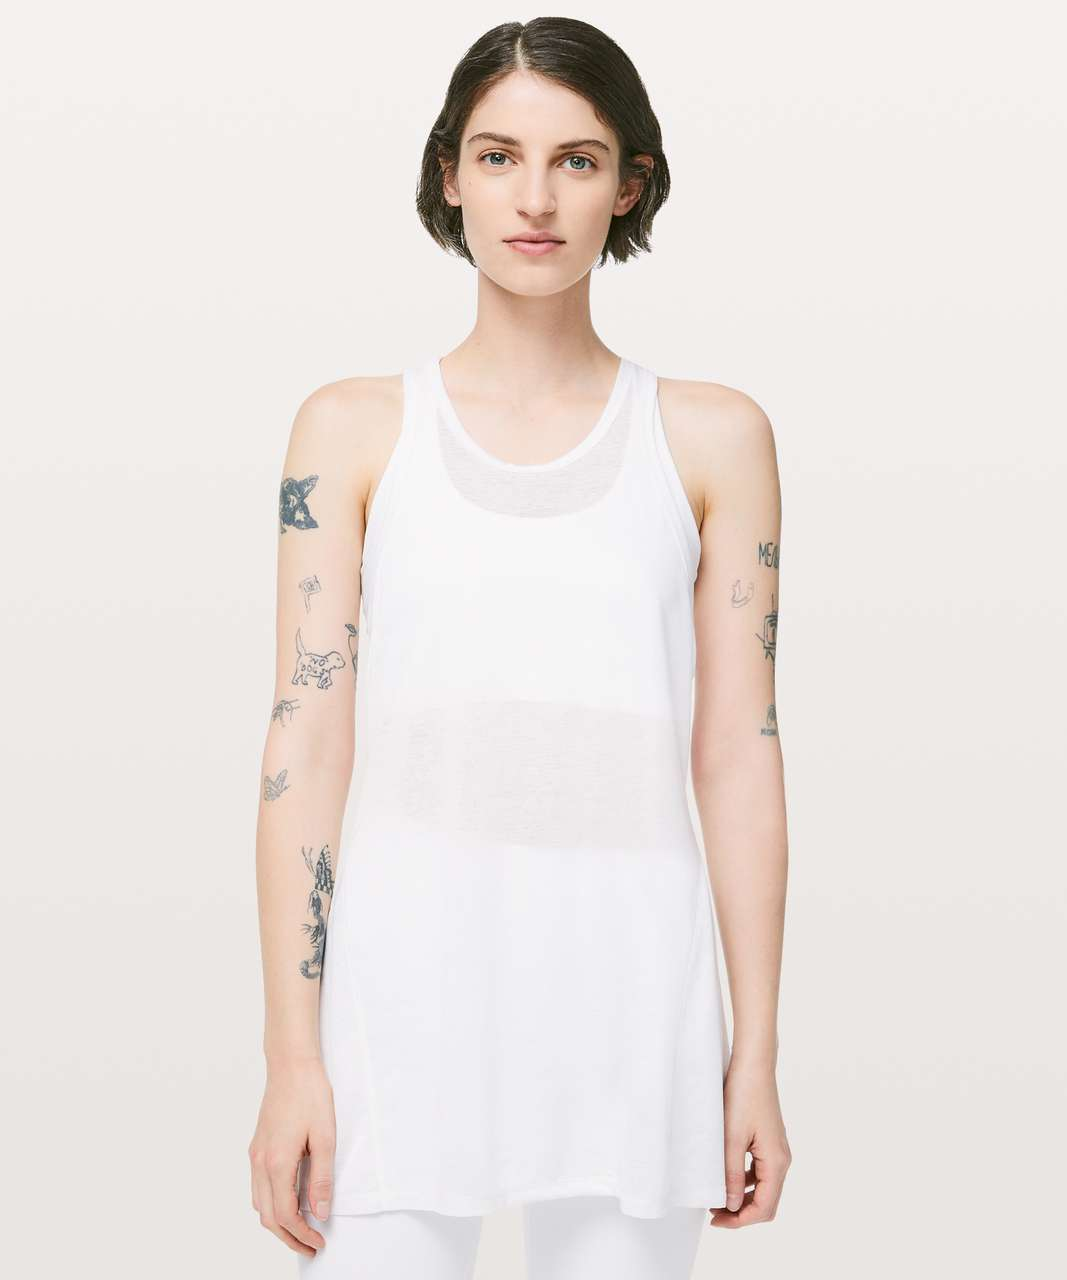 Lululemon Goal Up Tank - White